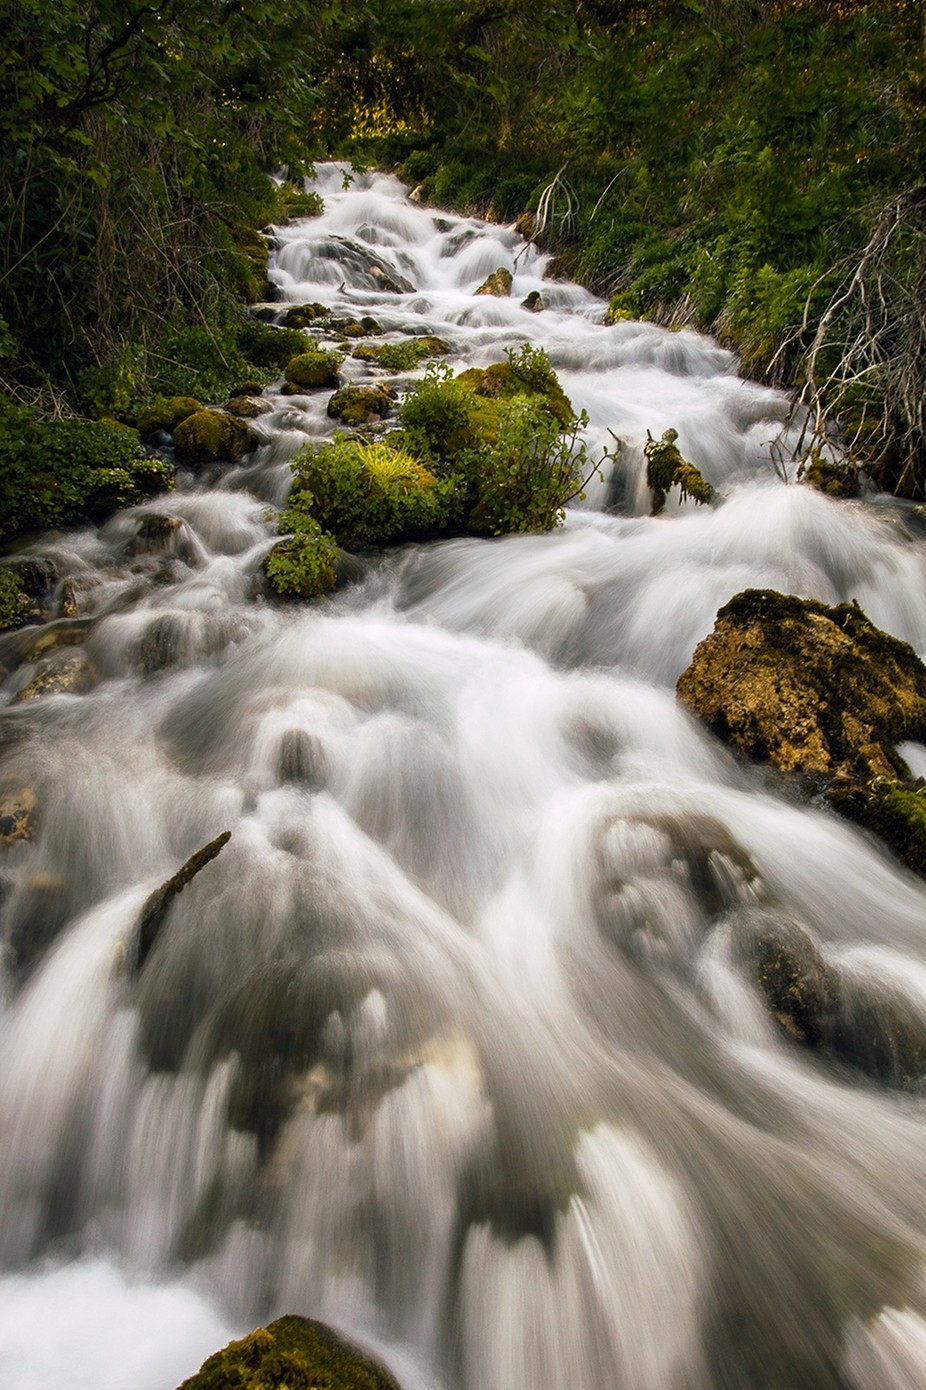 Water by tomato1236 - Streams In Nature Photo Contest